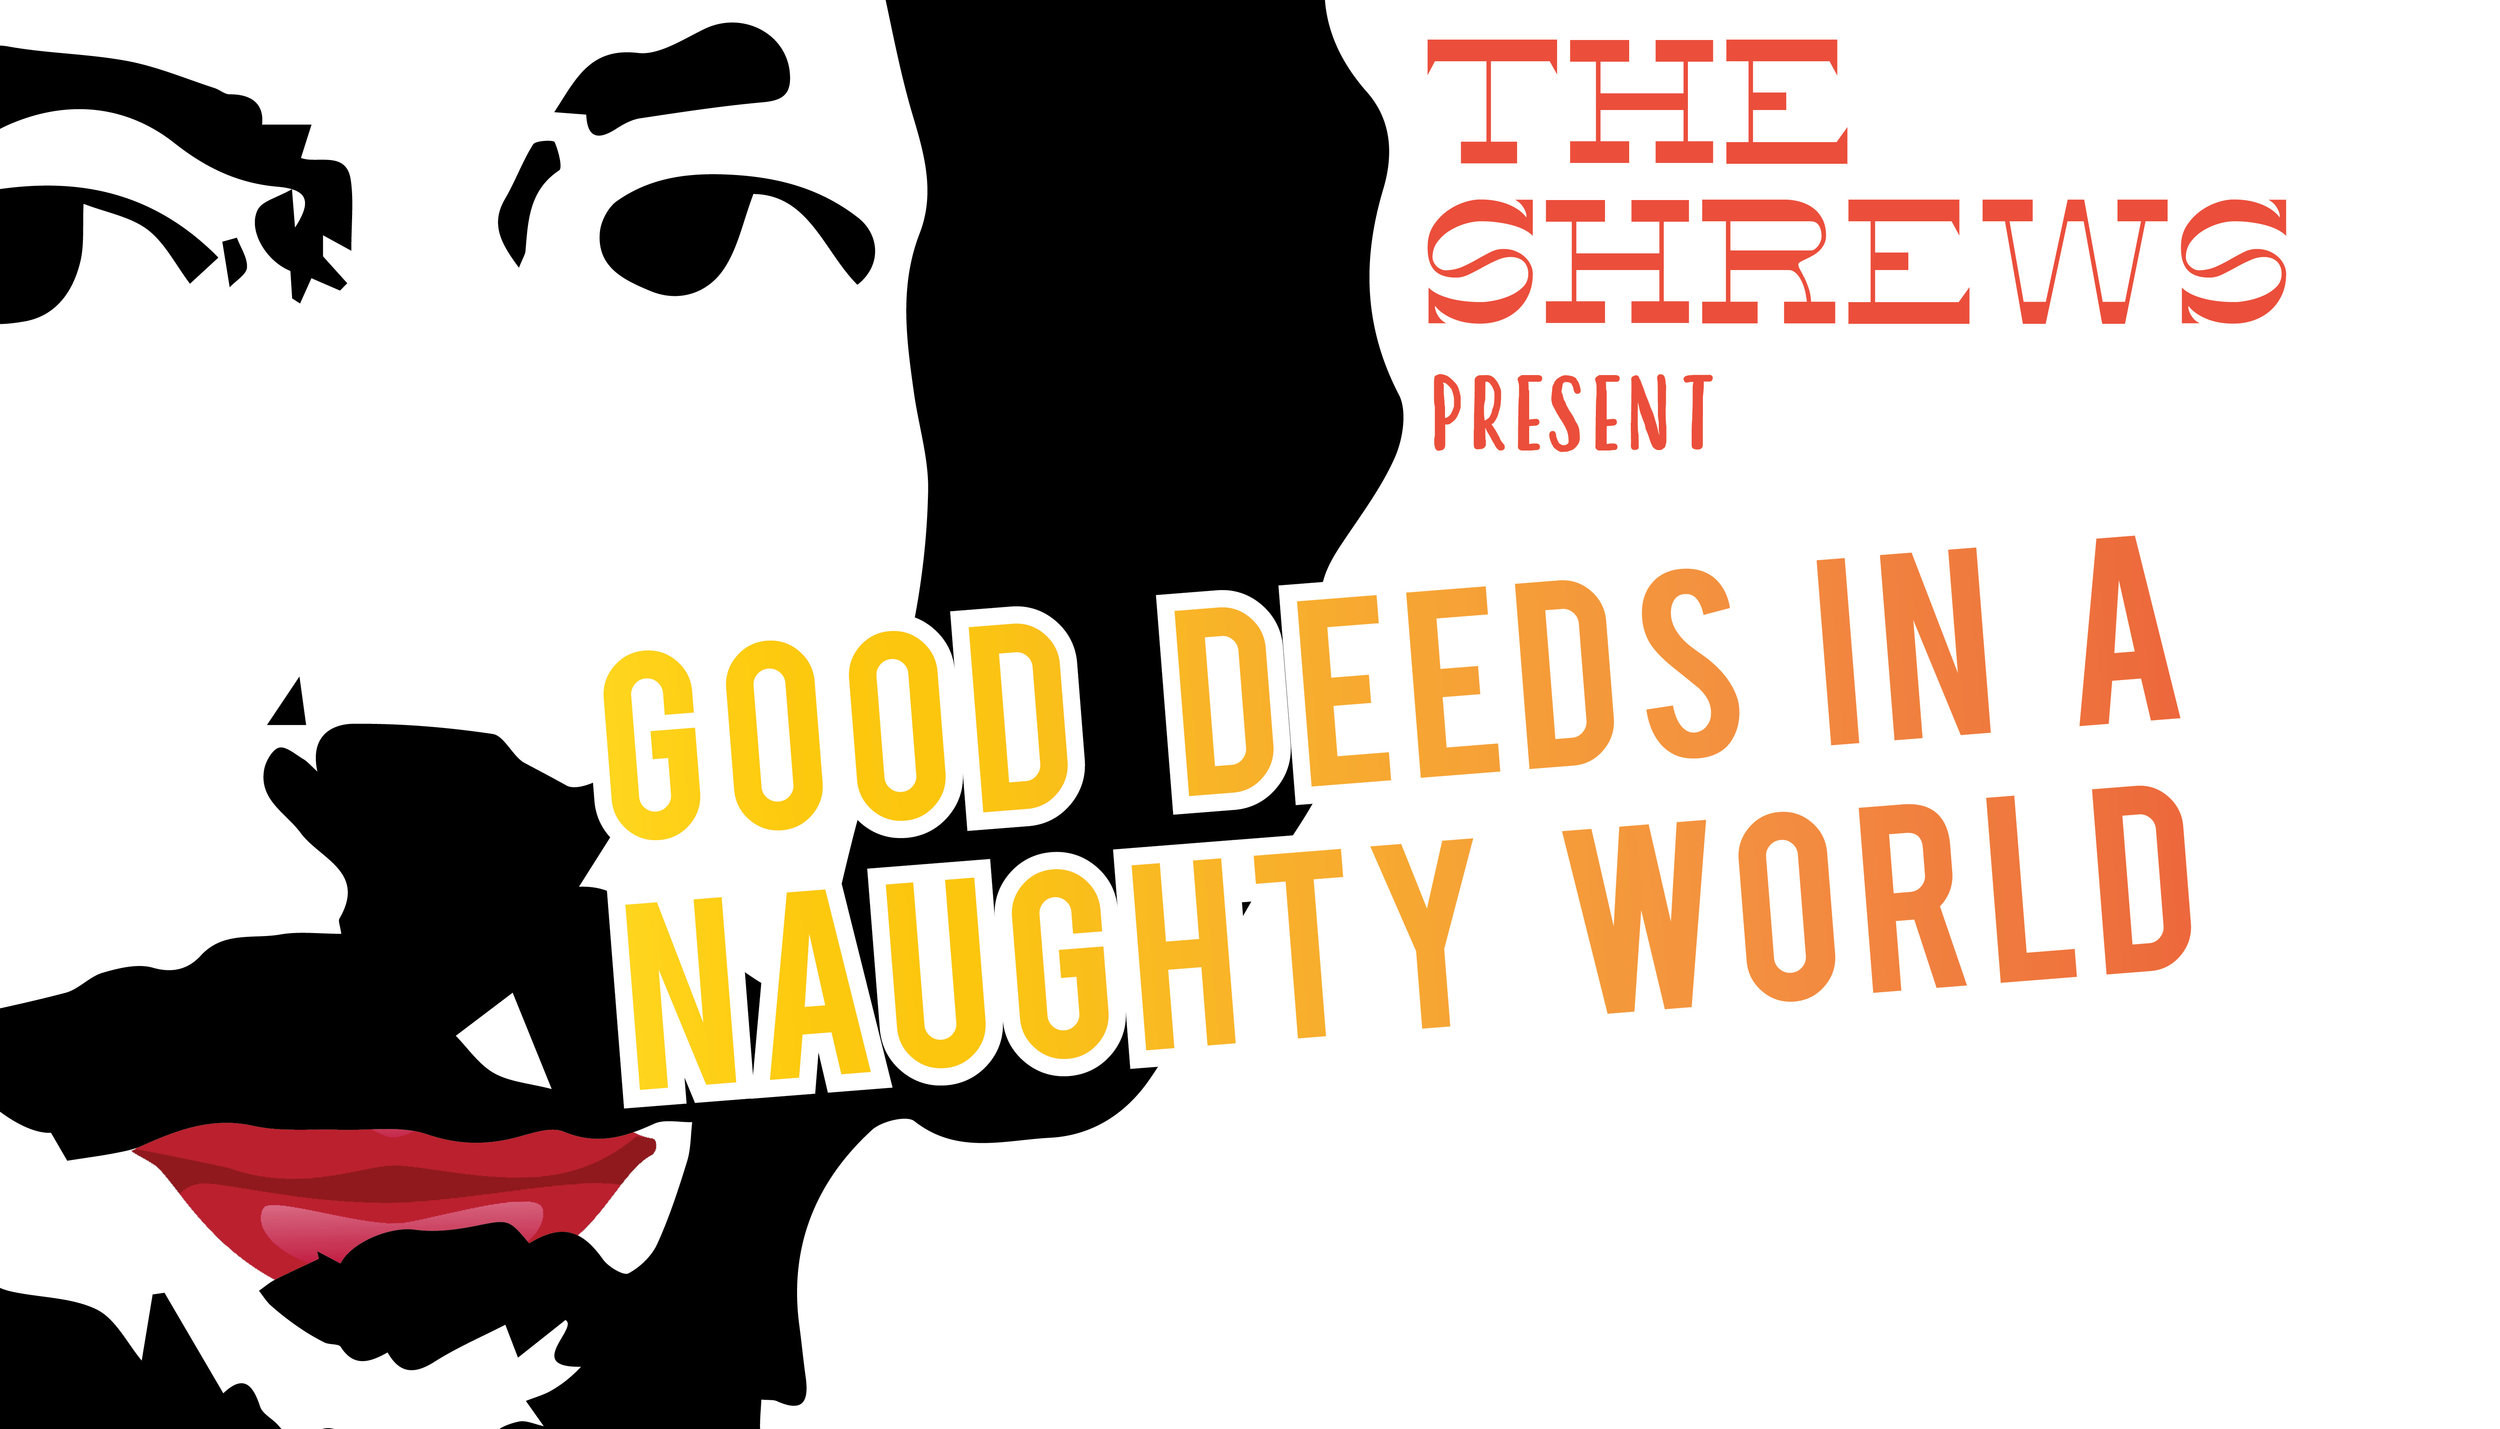 - Wednesdays, September 25 - October 16The Shrews are back this Fall with Good Deeds in a Naughty World, a new run of Shakespearean-style improv. Each week, The Shrews will perform a fully-improvised Shakespearean-style play based on audience suggestion.Jumping back into the improv world with this show! 'Twill be a blast so get tickets here!